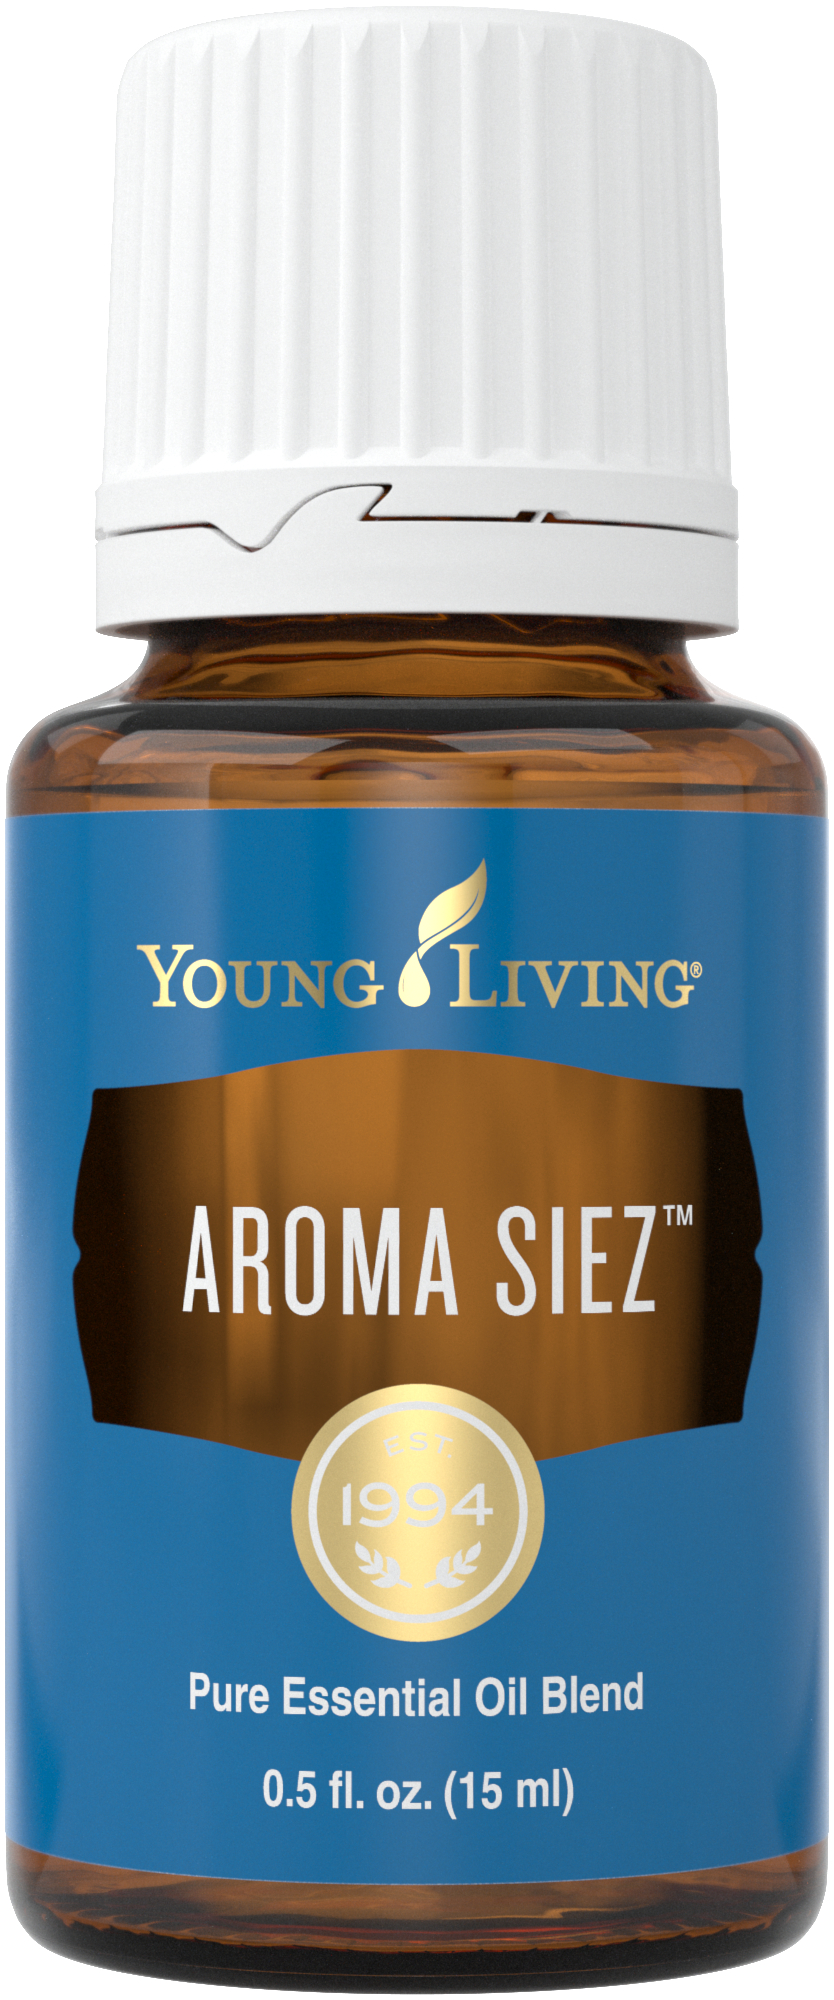 Aroma Siez Essential Oil Blend - Young Living Essential Oils